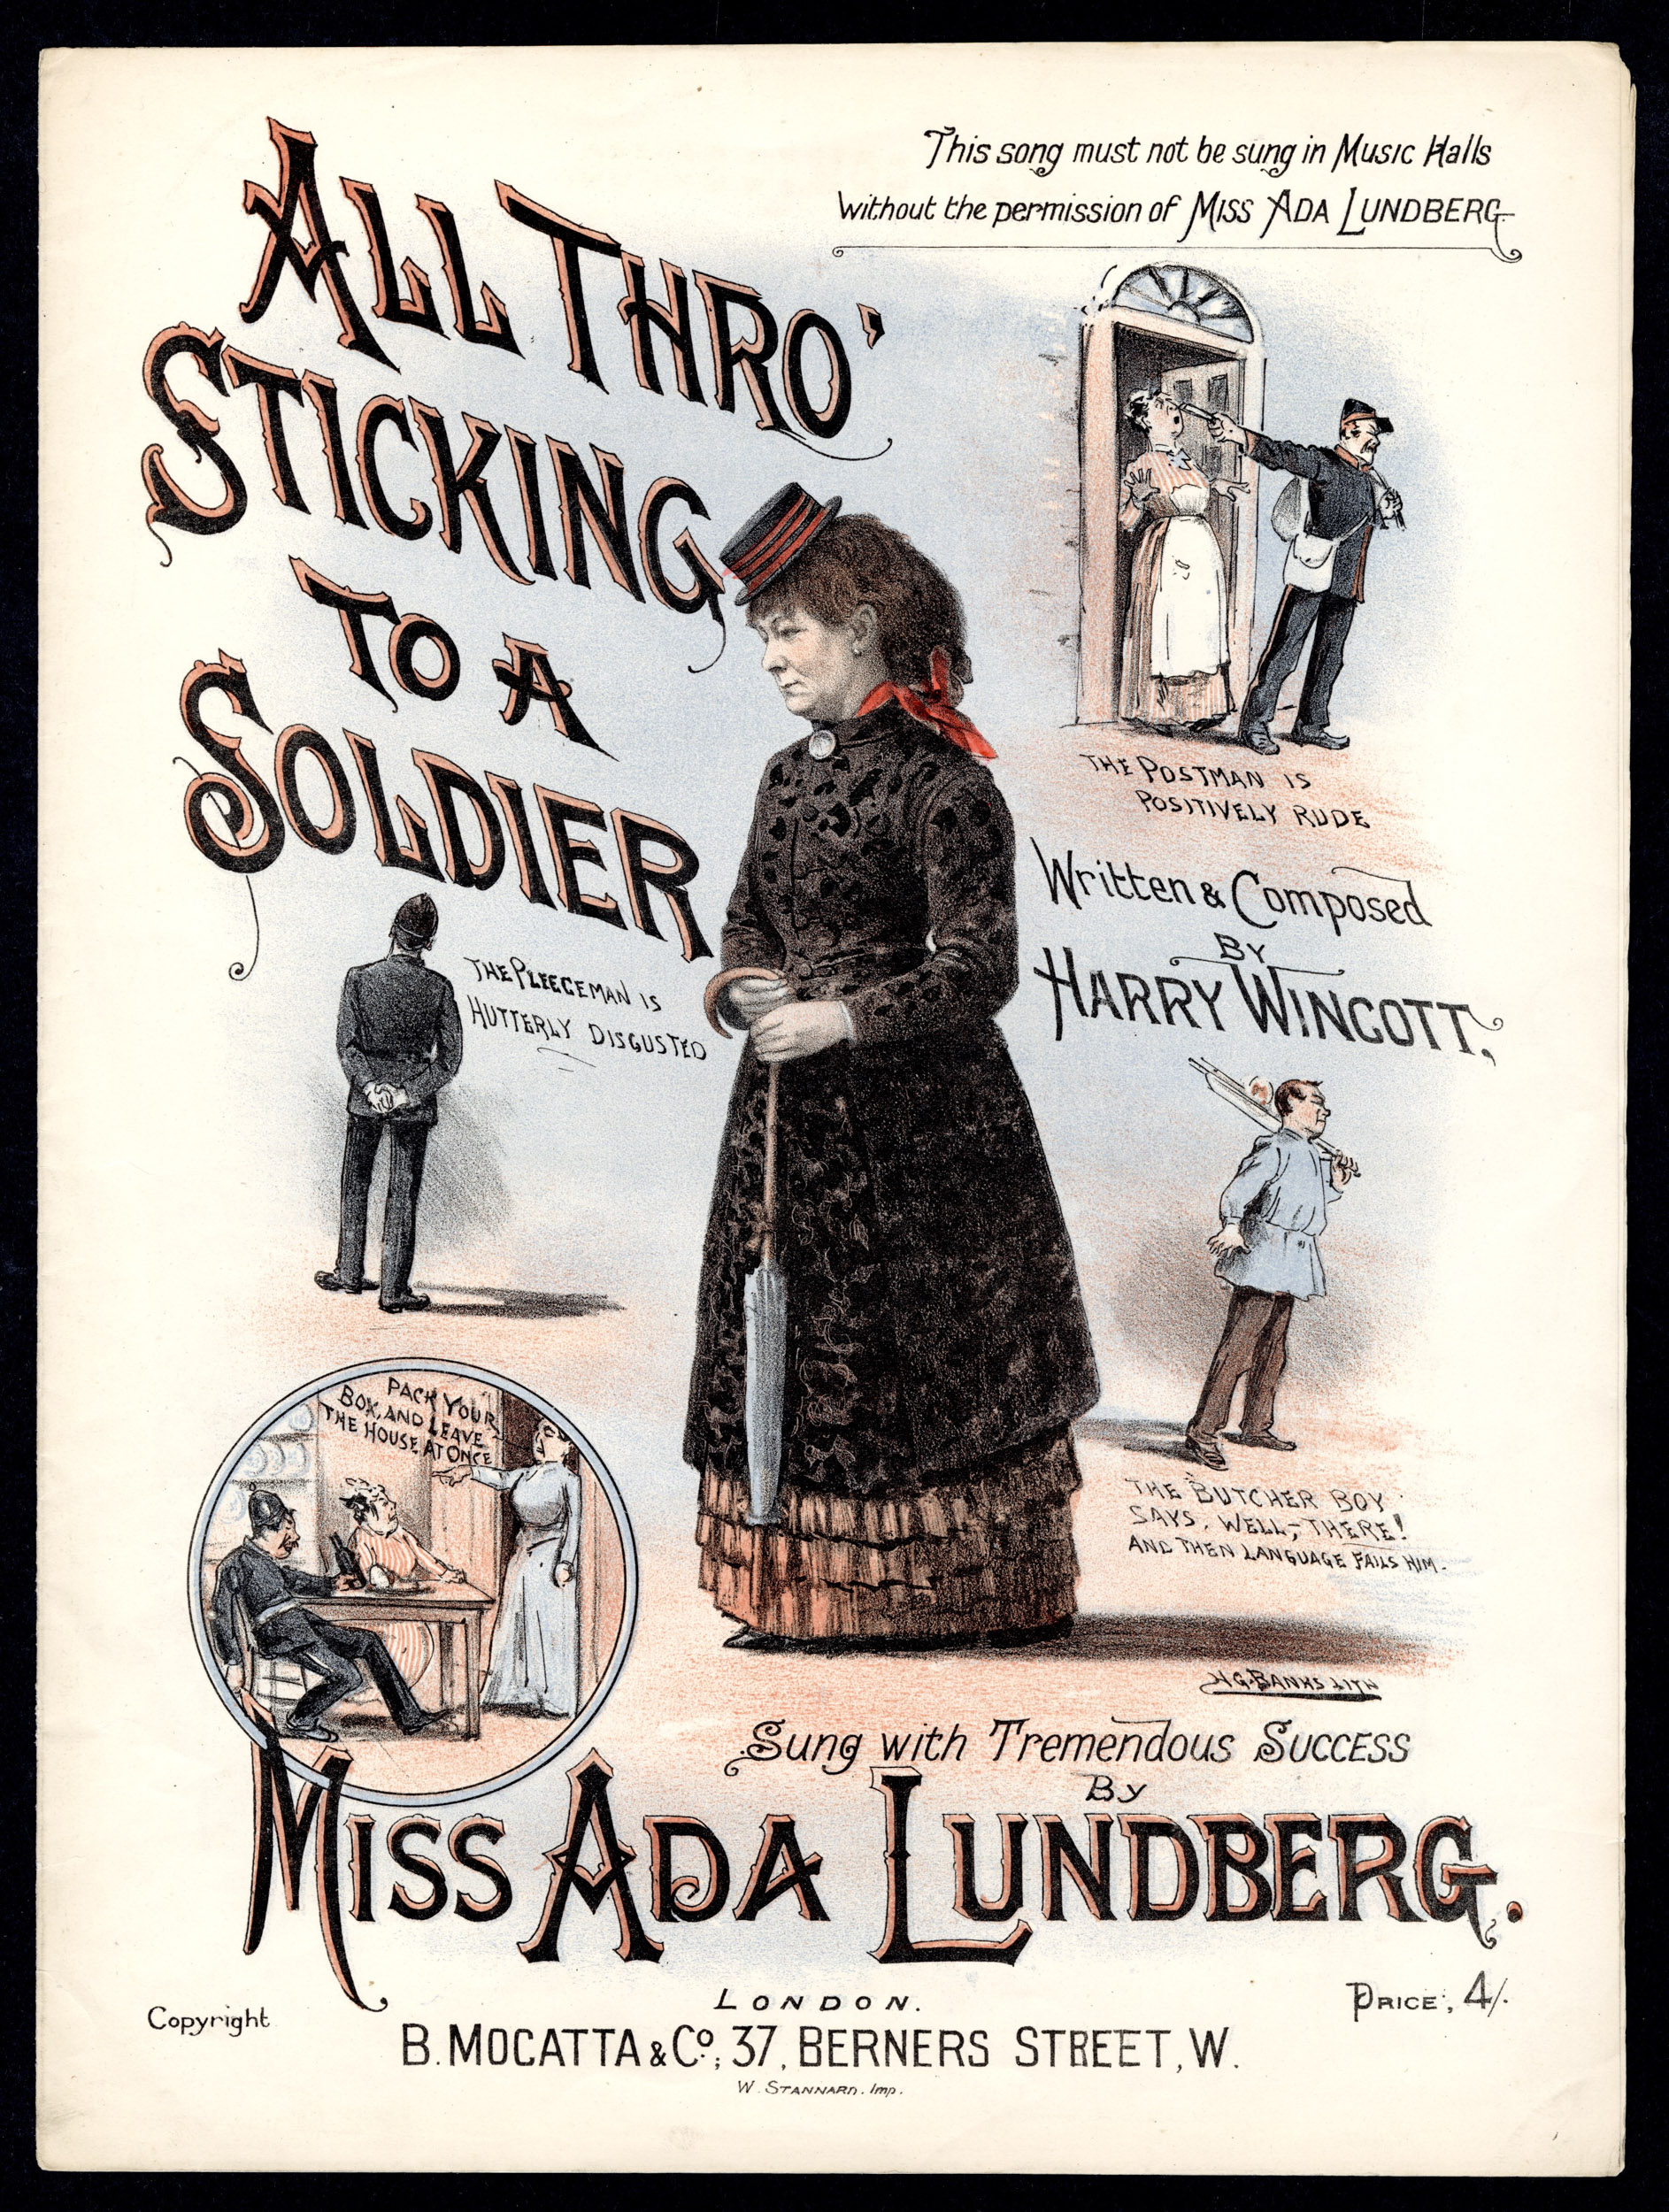 Cover for sheet music to 'All Thro' Sticking to a Soldier' sung by Miss Ada Lundberg, from the Max Tyler Music Hall collection